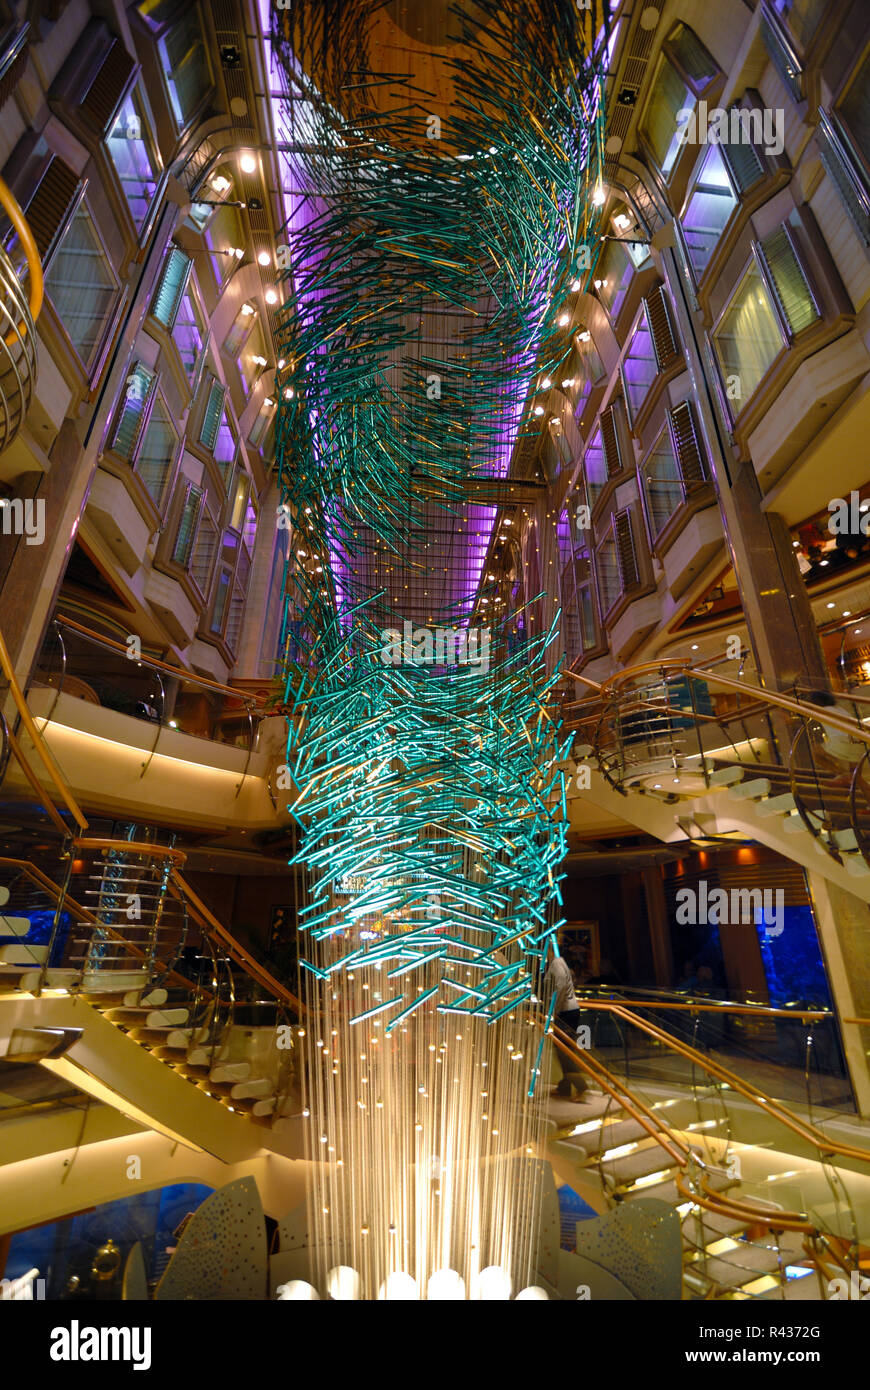 A colorful art piece with dramatic colors and lightings amidst stairways on the Royal Caribbean cruise ship Adventure of the Seas - Stock Image